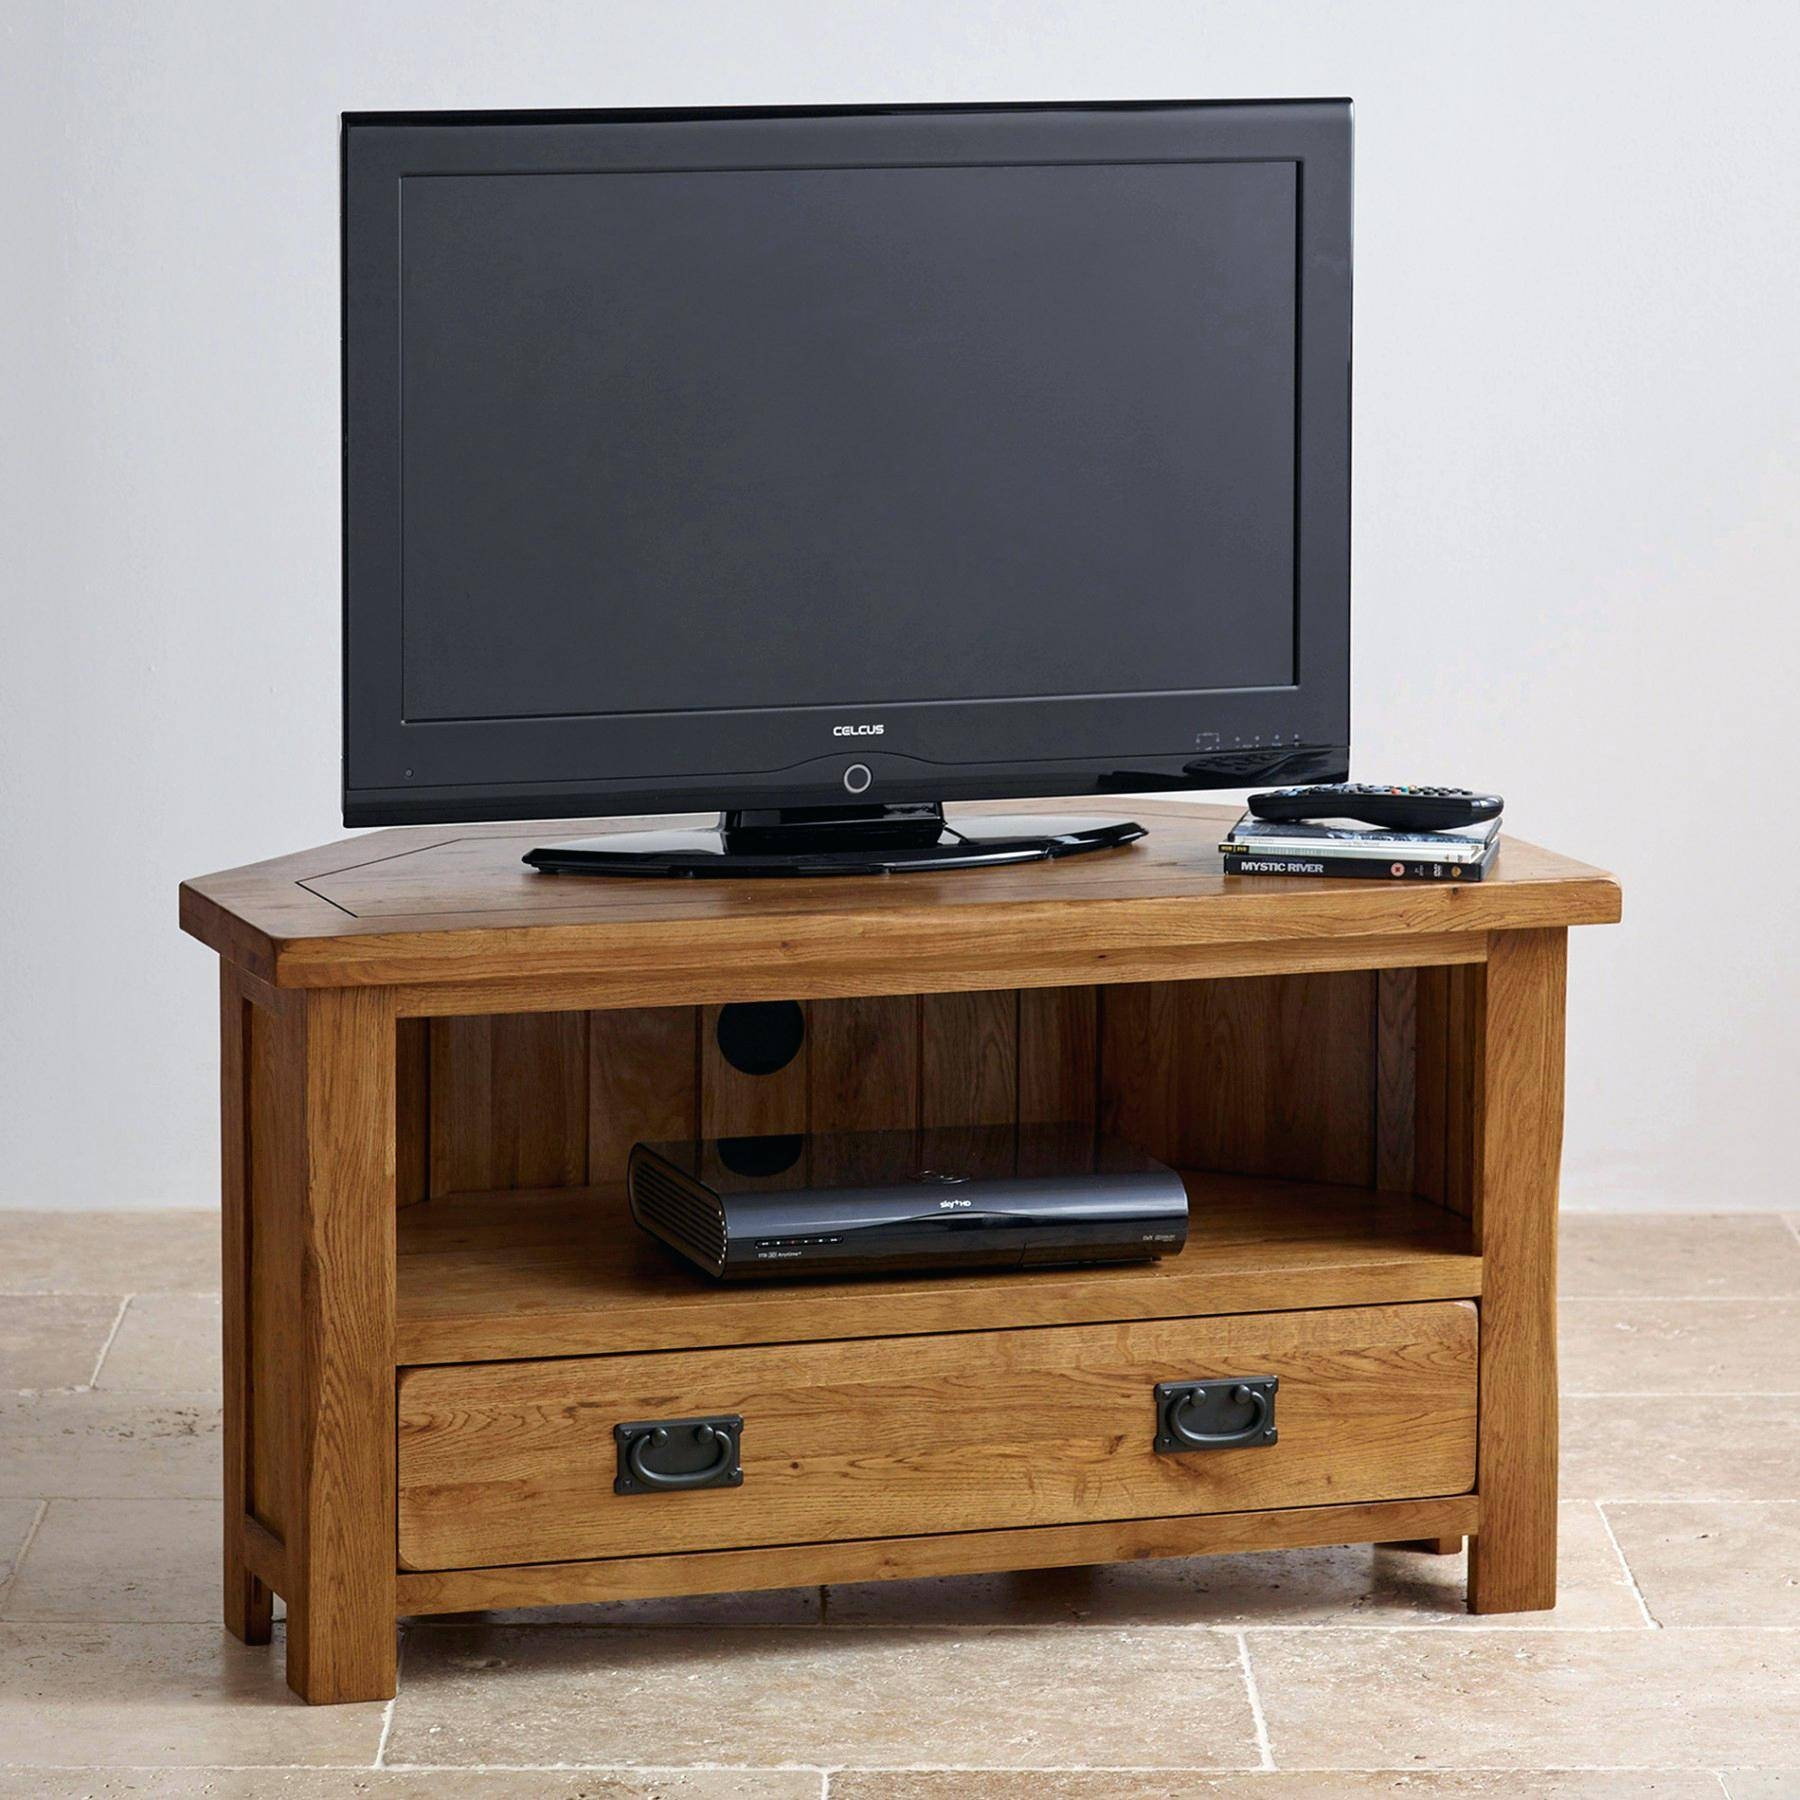 Tv Stand : Amazing 42 Plasma Tv Wall Mounted In The Corner Of The for Tv Stands With Rounded Corners (Image 5 of 15)